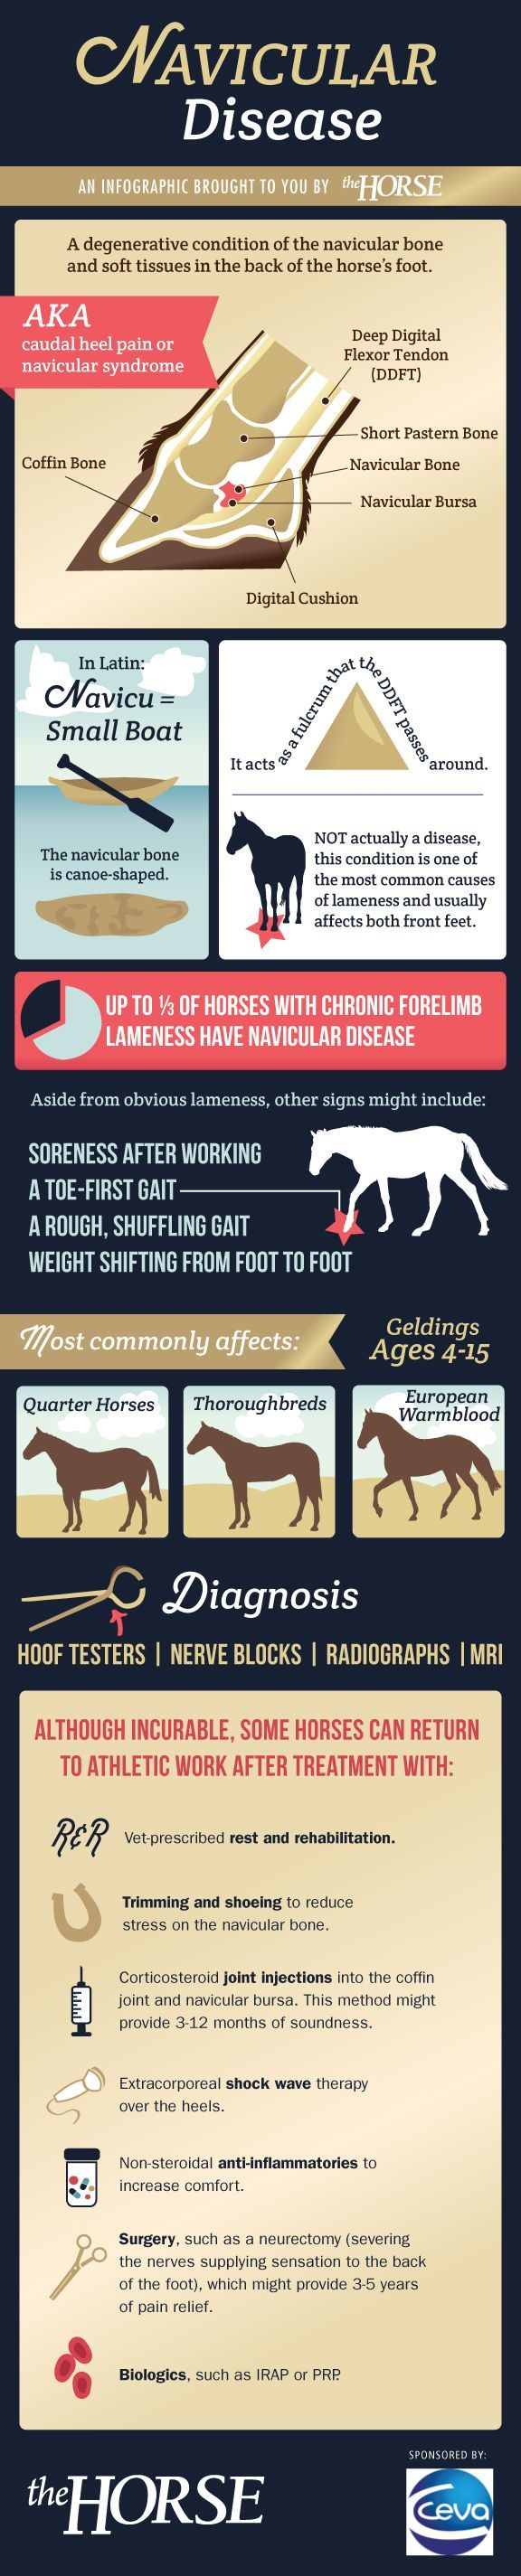 [INFOGRAPHIC] Navicular Disease in Horses - The navicular is a tiny bone that can cause big problems in horses. It and its associated structures are responsible for up to 1/3 of all front-limb lamenesses. Learn more in our step-by-step visual guide from http://TheHorse.com and CEVA.